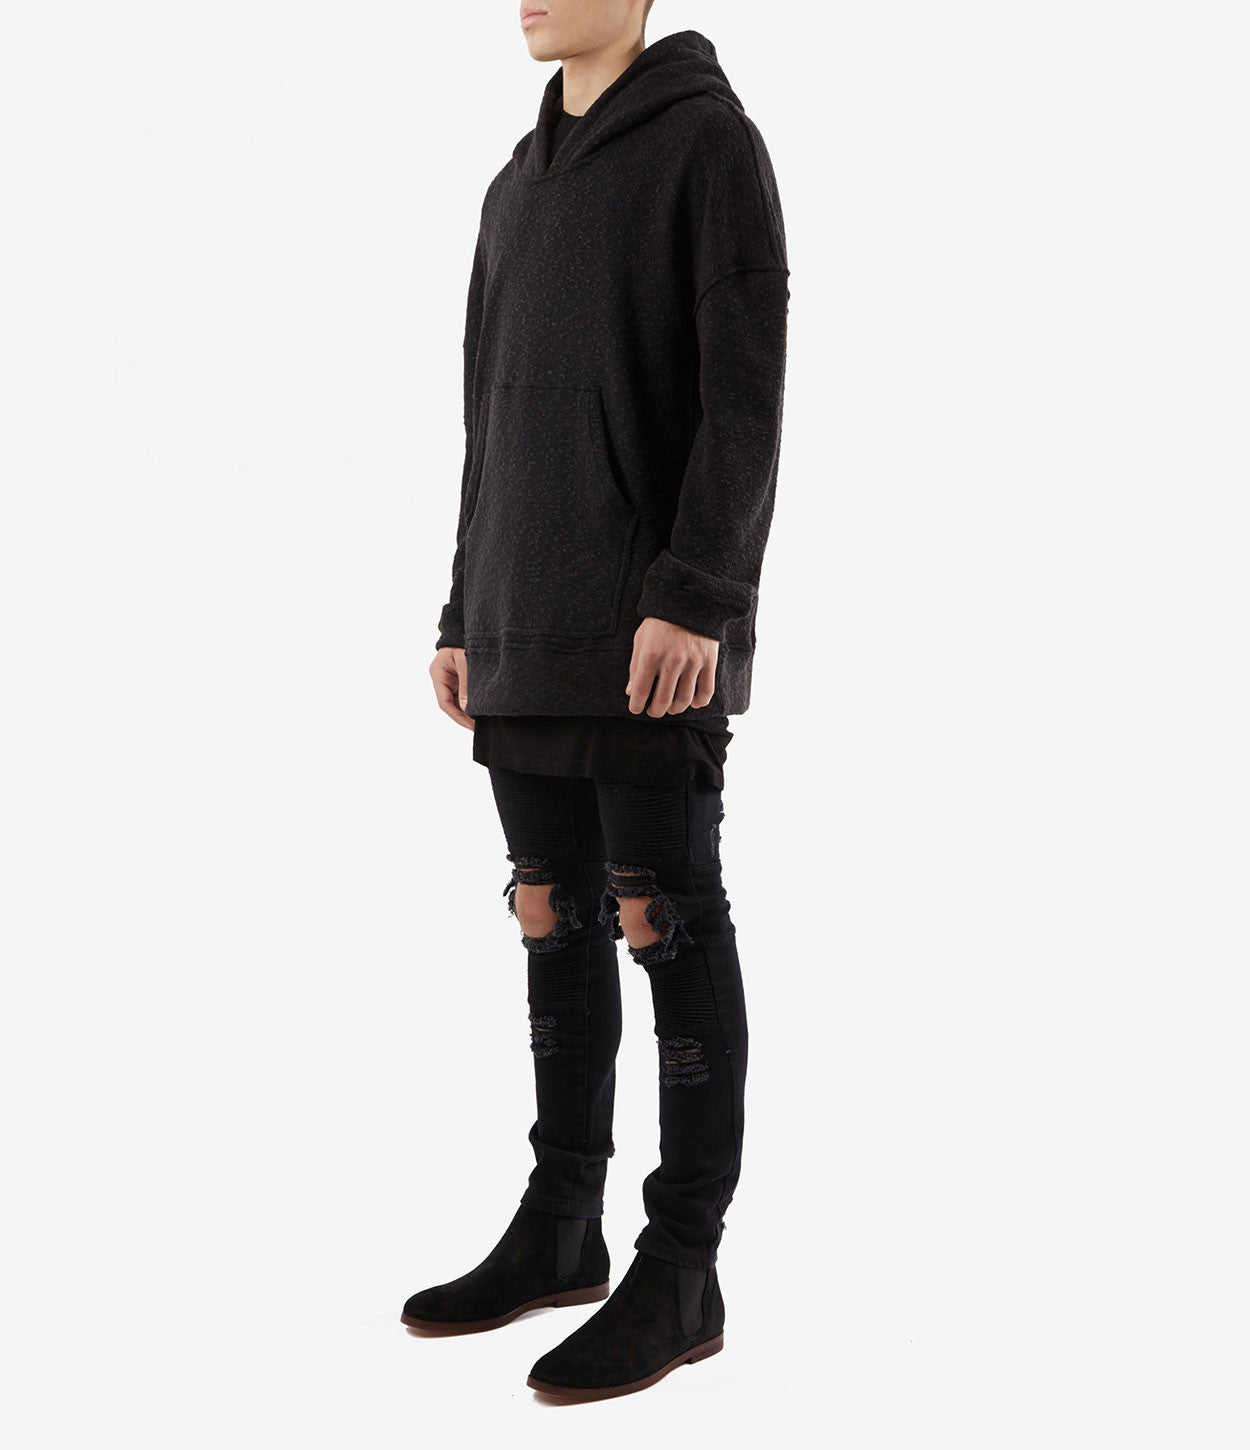 HD378 Oversized Knit Hoody - Charcoal/Black - underated london - underatedco - 3